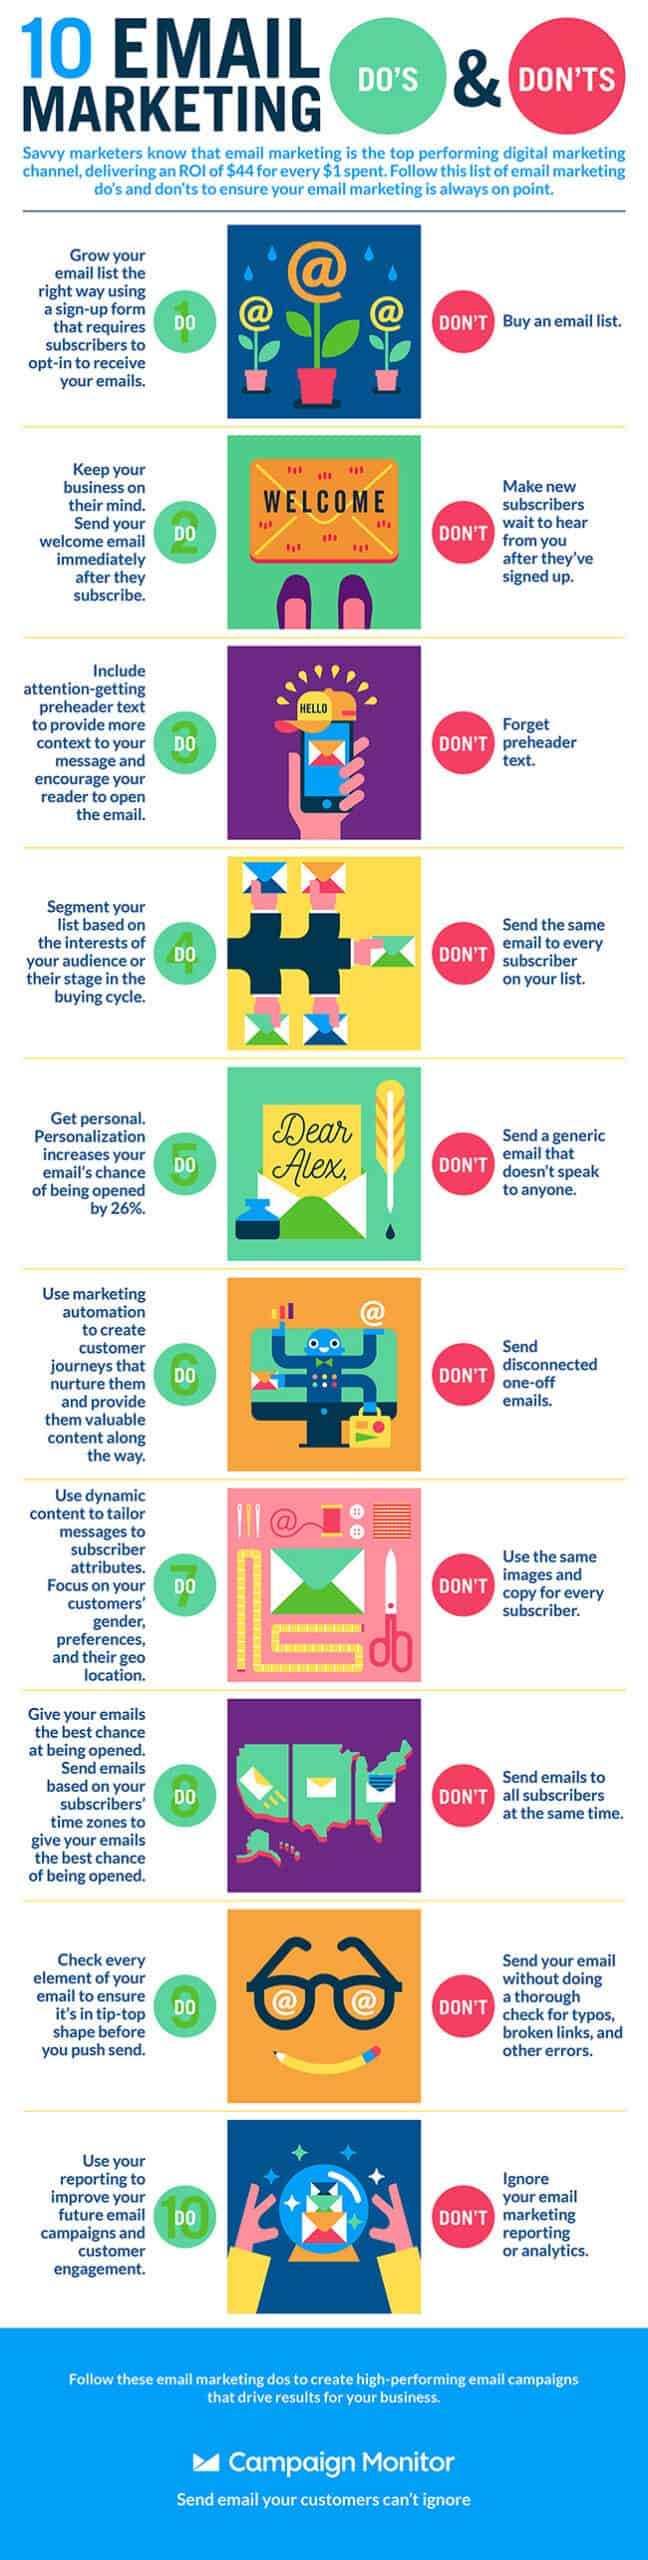 Dive more into the basics of Email Marketing, with this list of the 10 do's and don'ts in this great infographic.